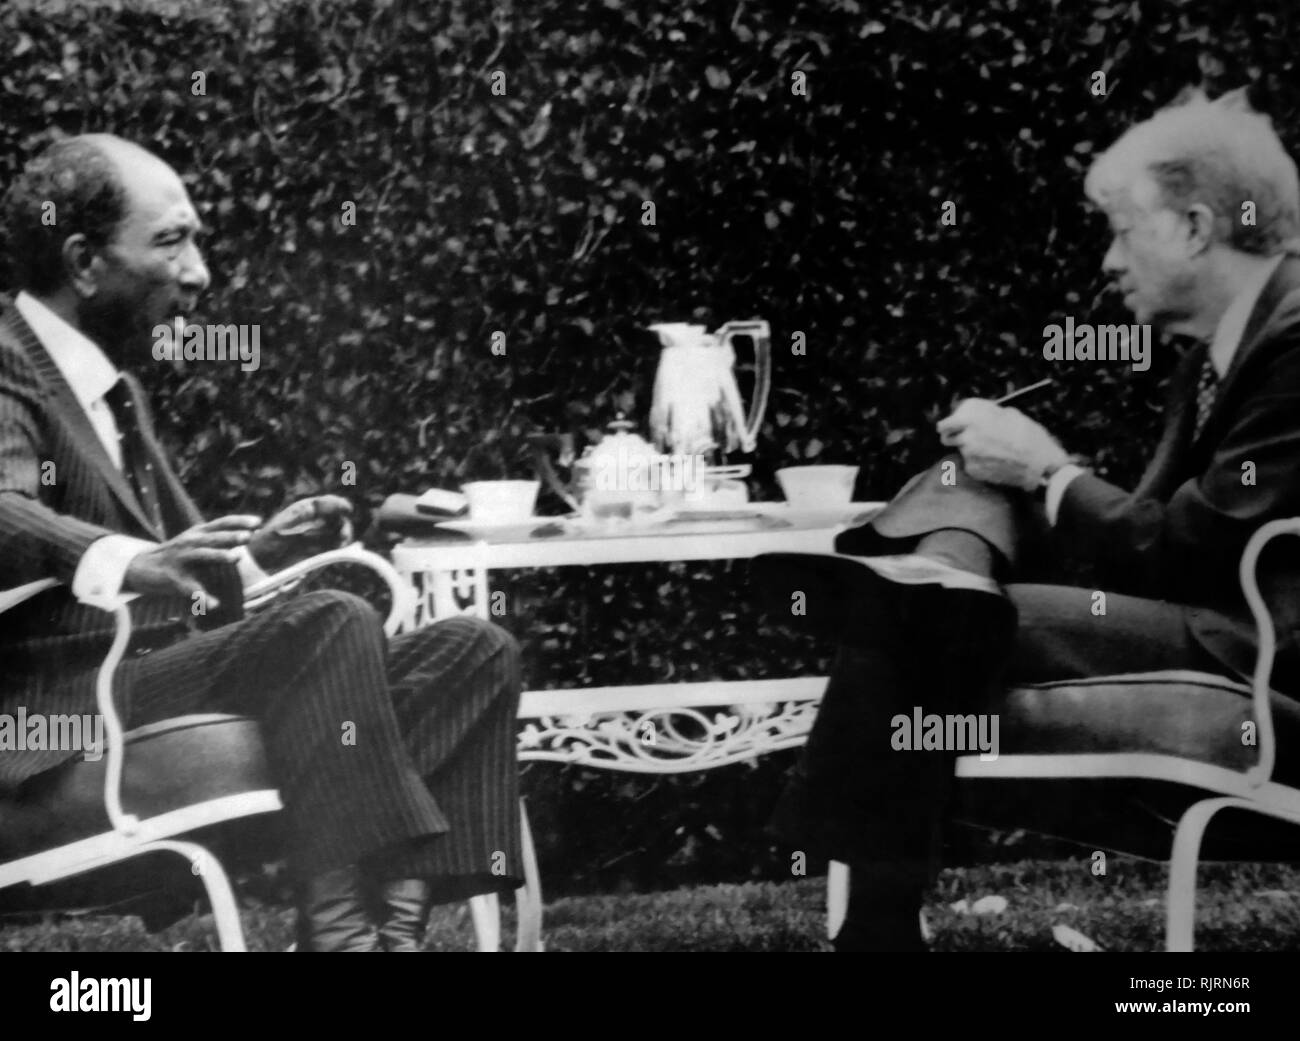 Meeting during the Middle East, Camp David Peace Negotiations, 1979 session with Jimmy Carter (US President), and Anwar Sadat (Egyptian President), Stock Photo